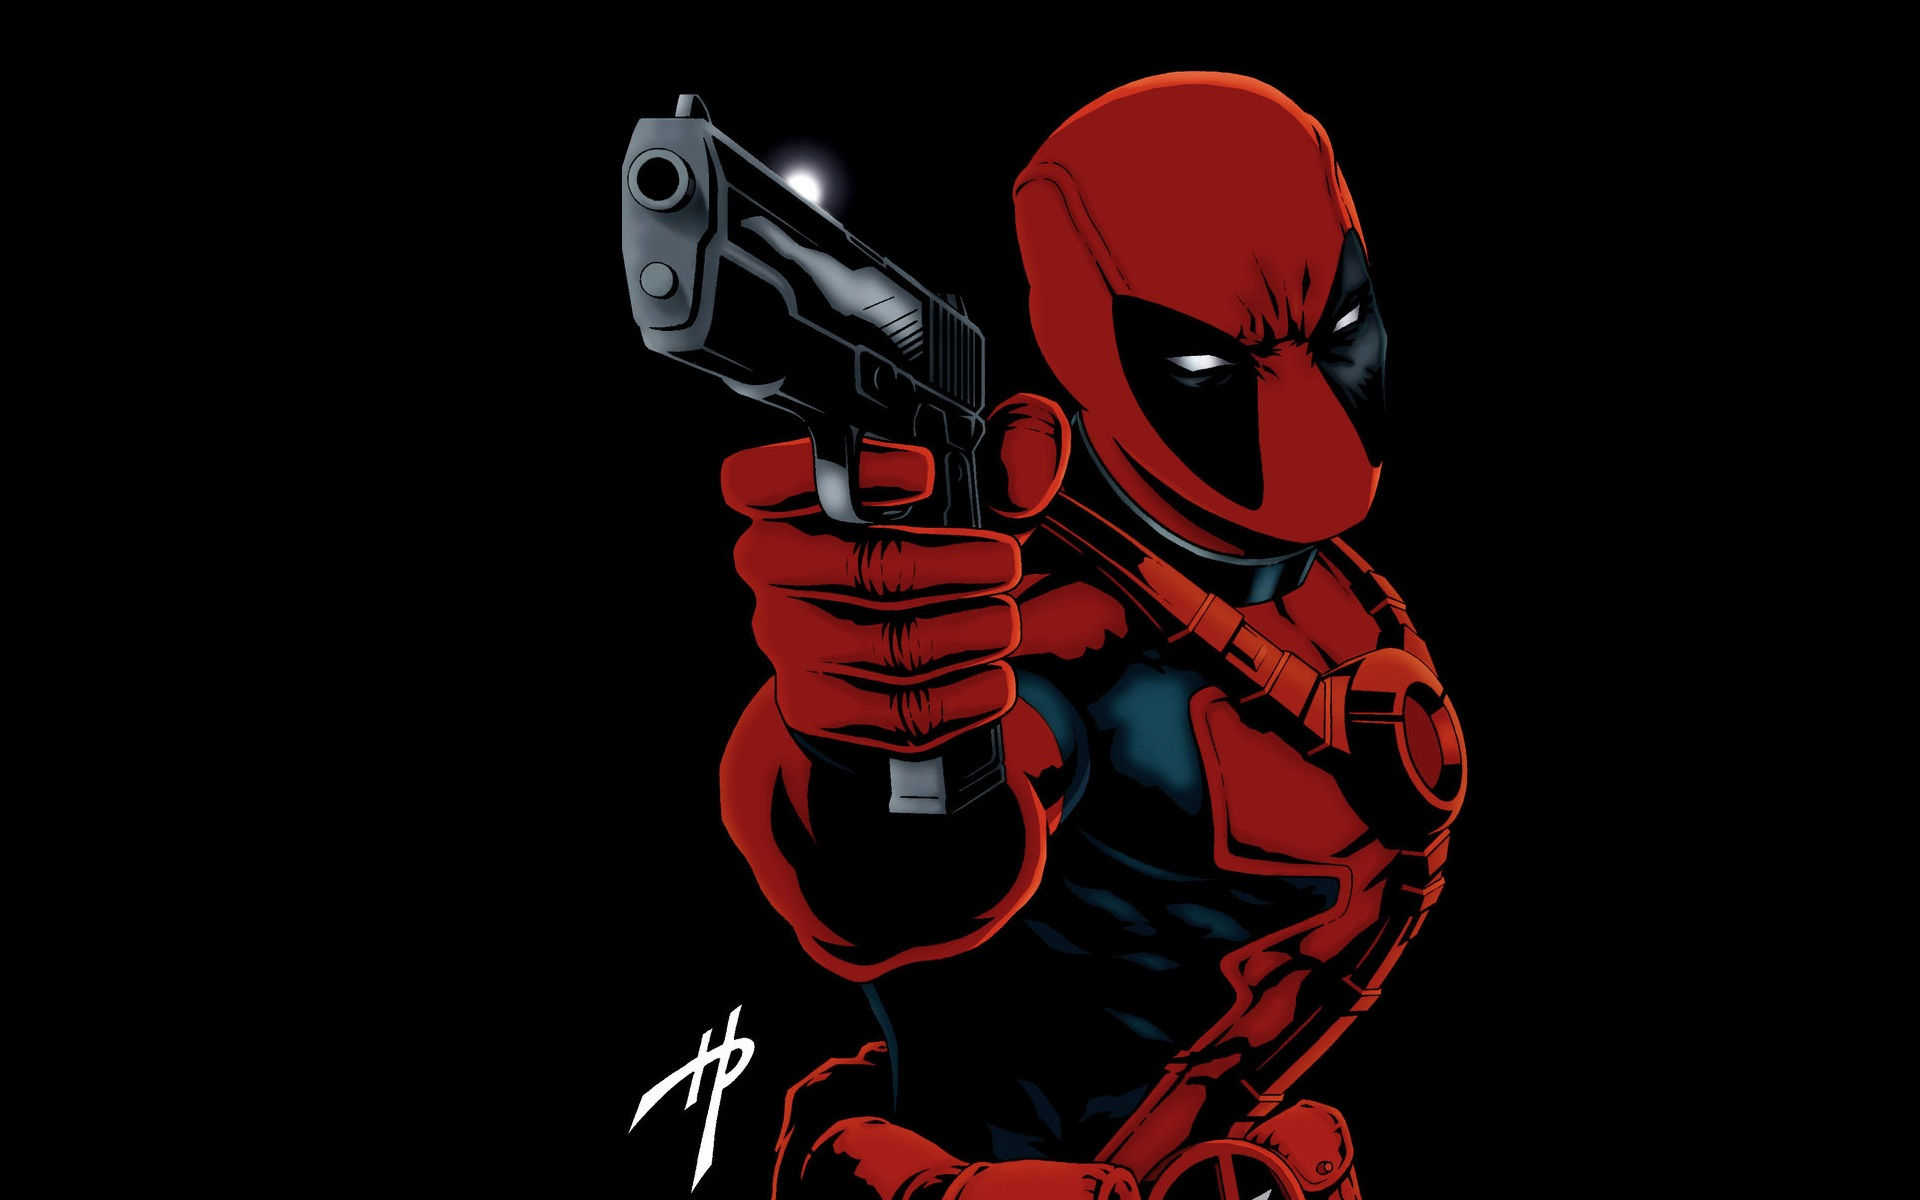 Comics Deadpool Wallpaper download free wallpaperwiki